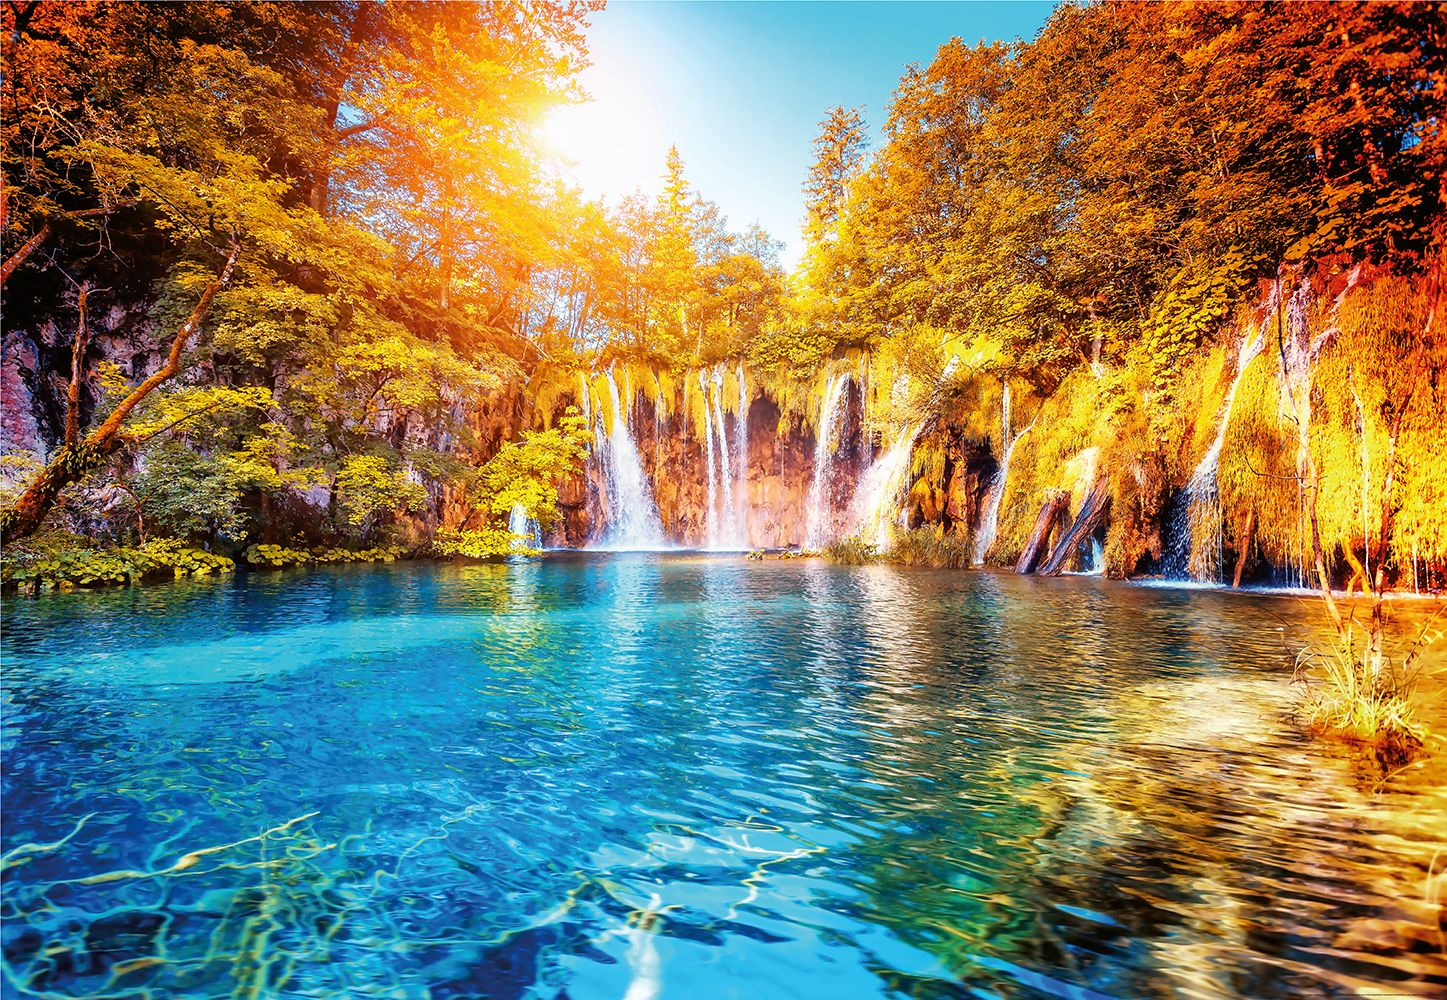 Valokuvatapetti Idealdecor Digital Waterfall And Lake In Croatia 4-osaa 5030-4V-1 254x368 cm